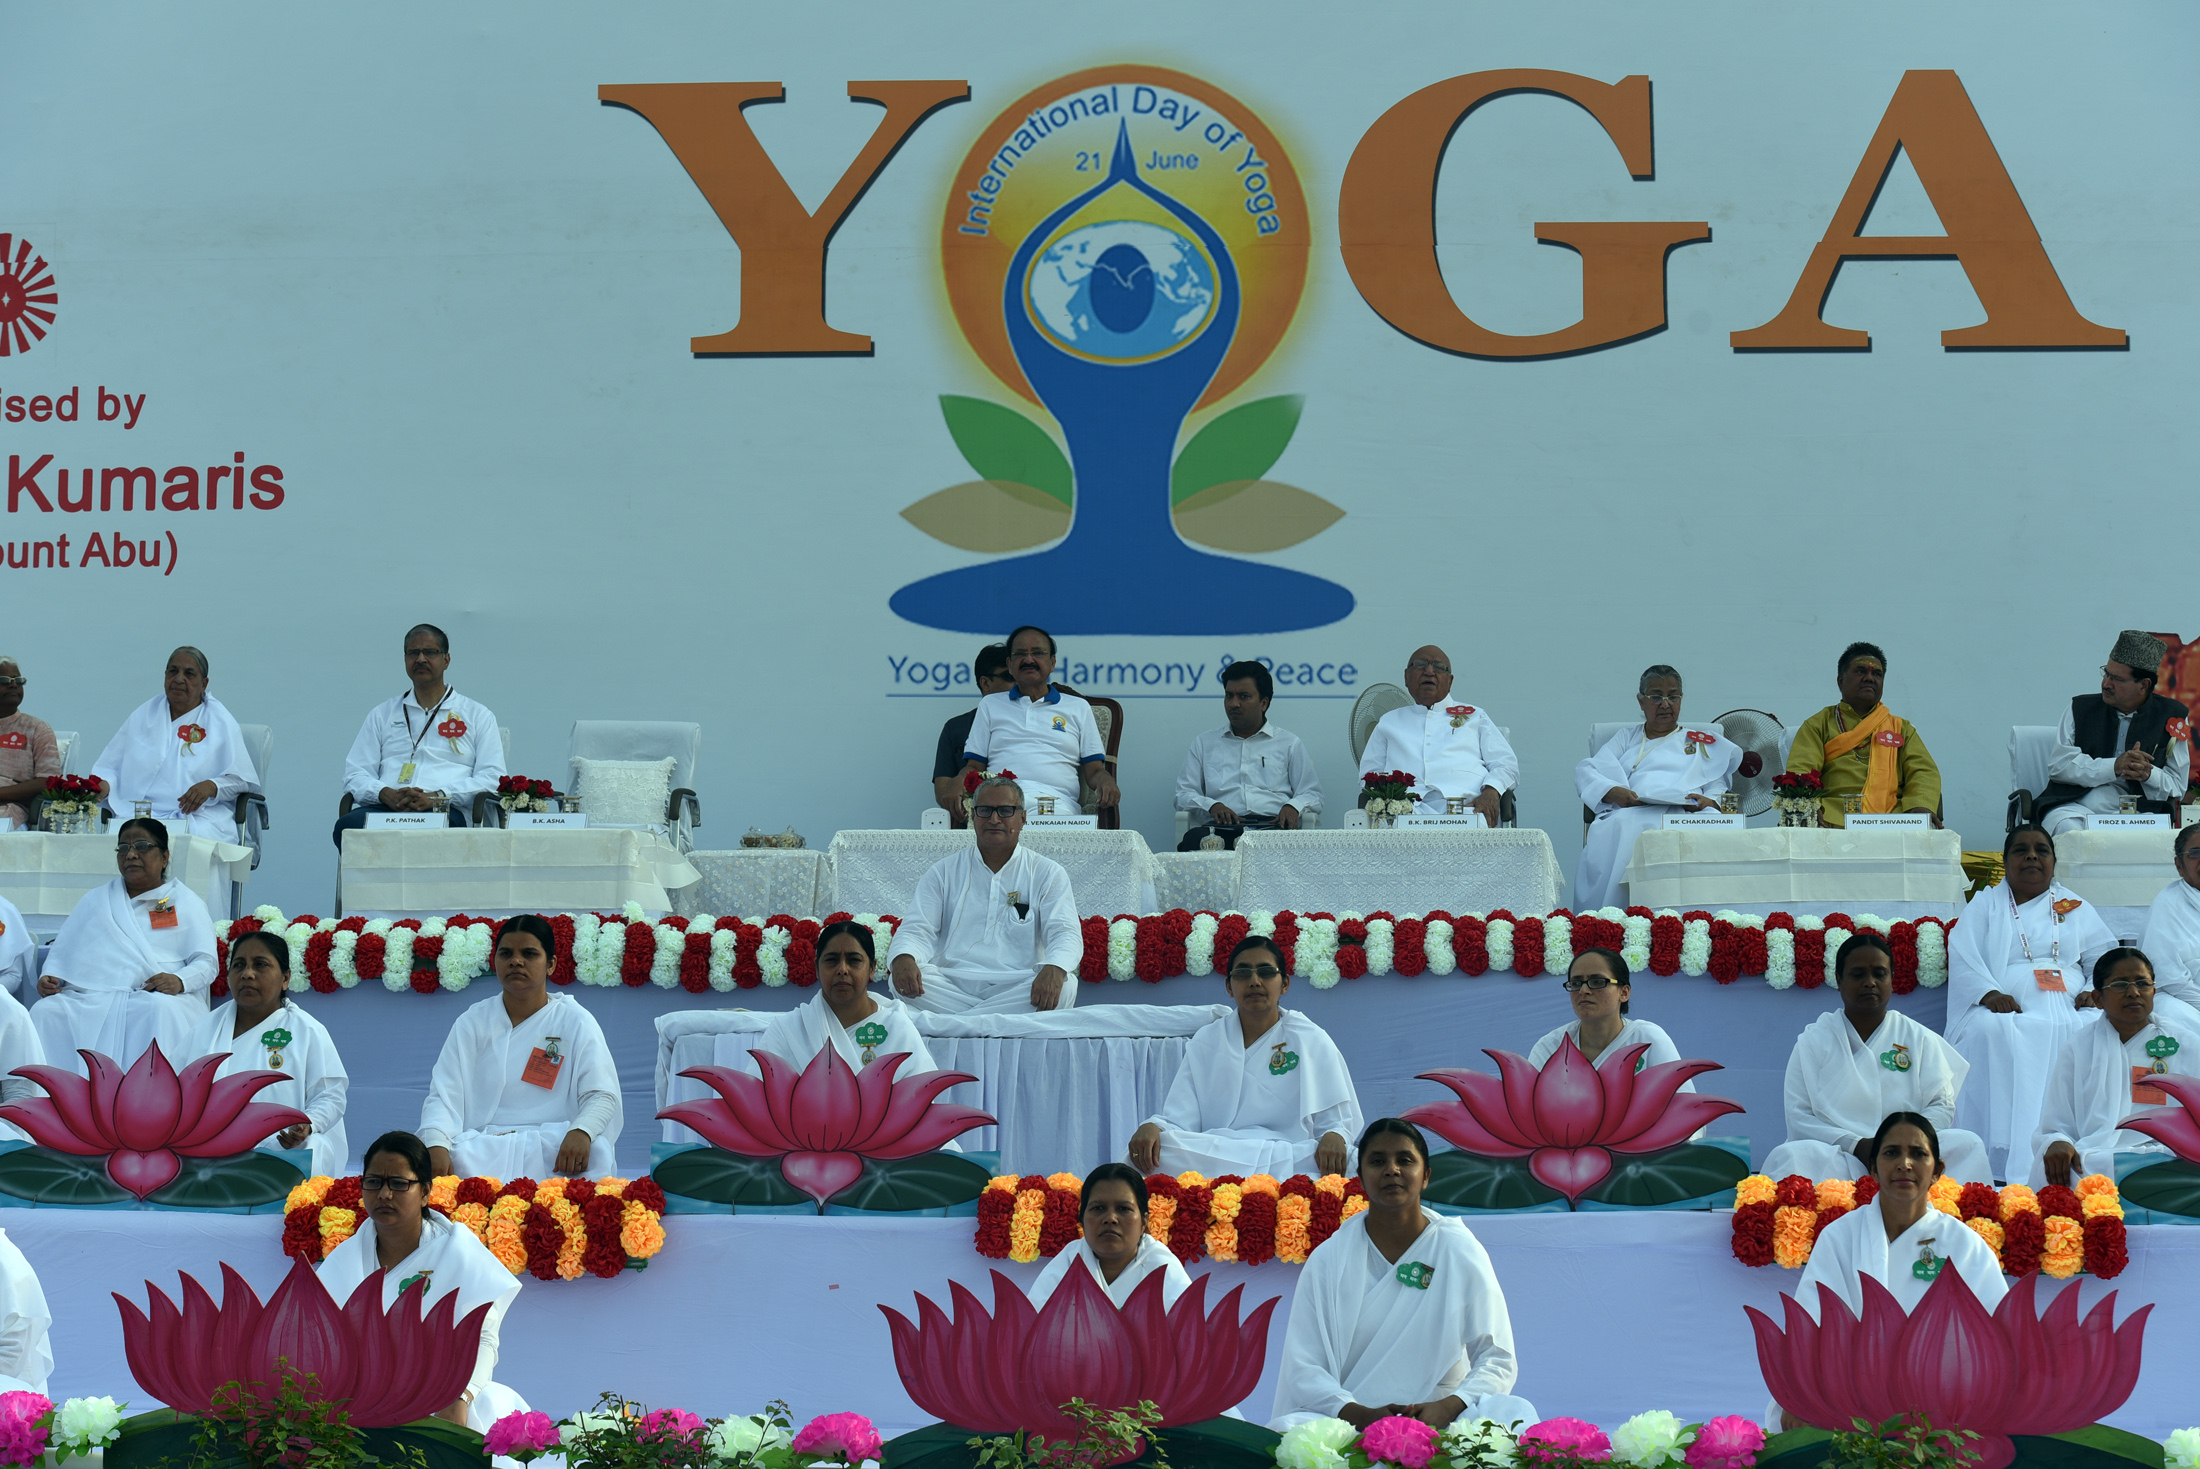 The Vice President, Shri M. Venkaiah Naidu at the International Day of Yoga celebrations organized by Prajapita Brahma Kumaris Vishwa Vidyalaya, at the Red Fort grounds, in Delhi on June 21, 2019.